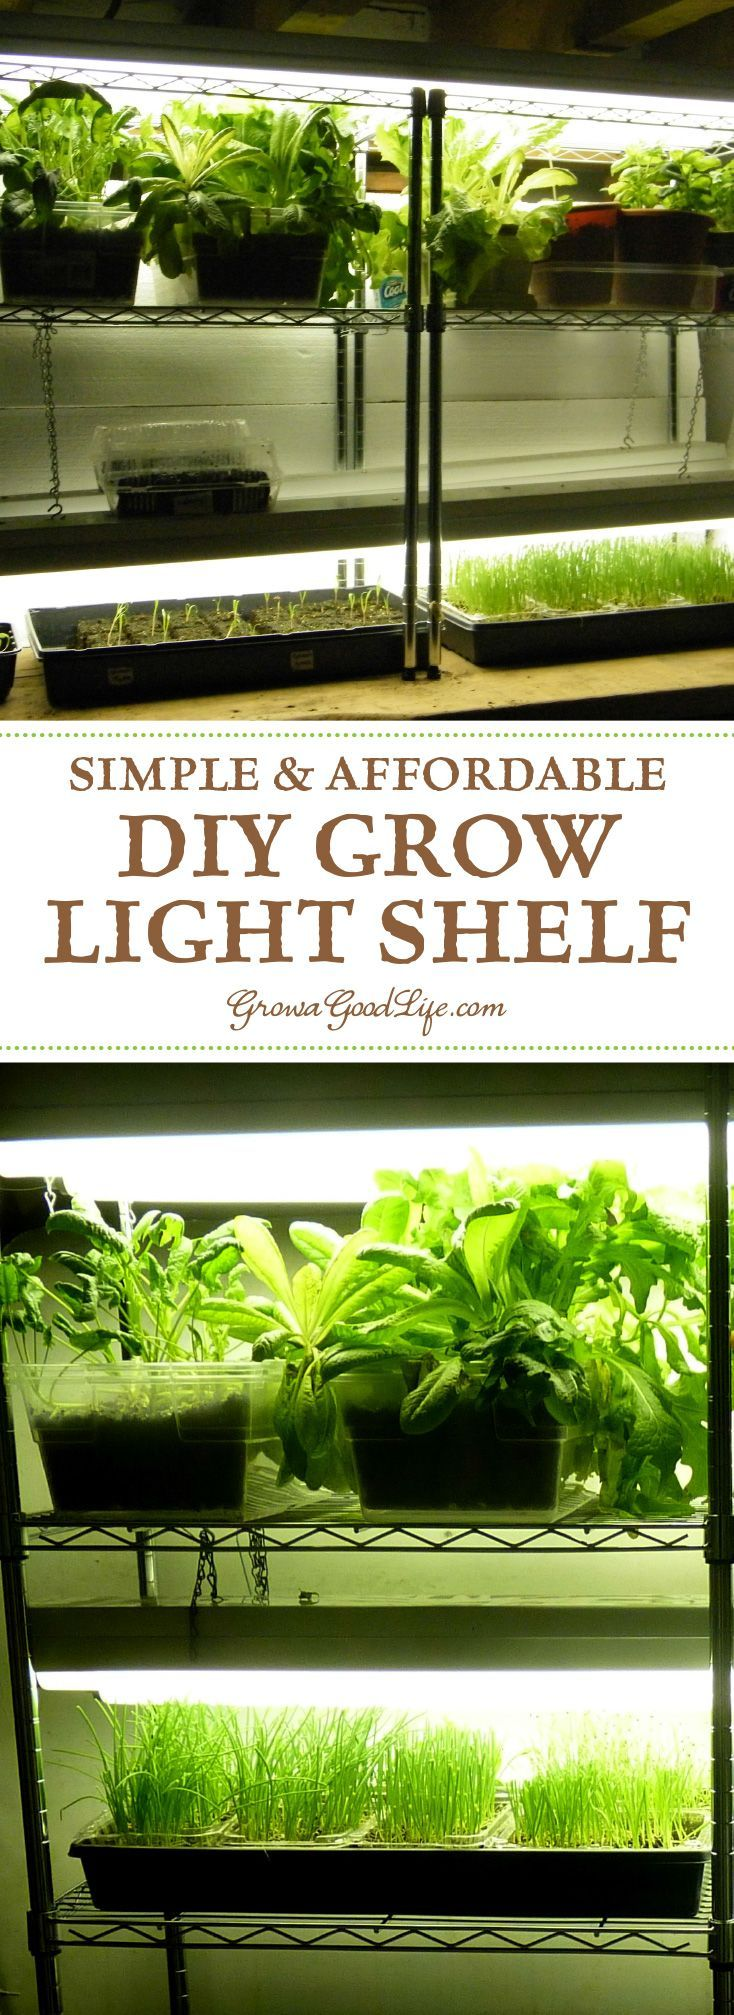 25 beautiful indoor gardening ideas on pinterest water plants